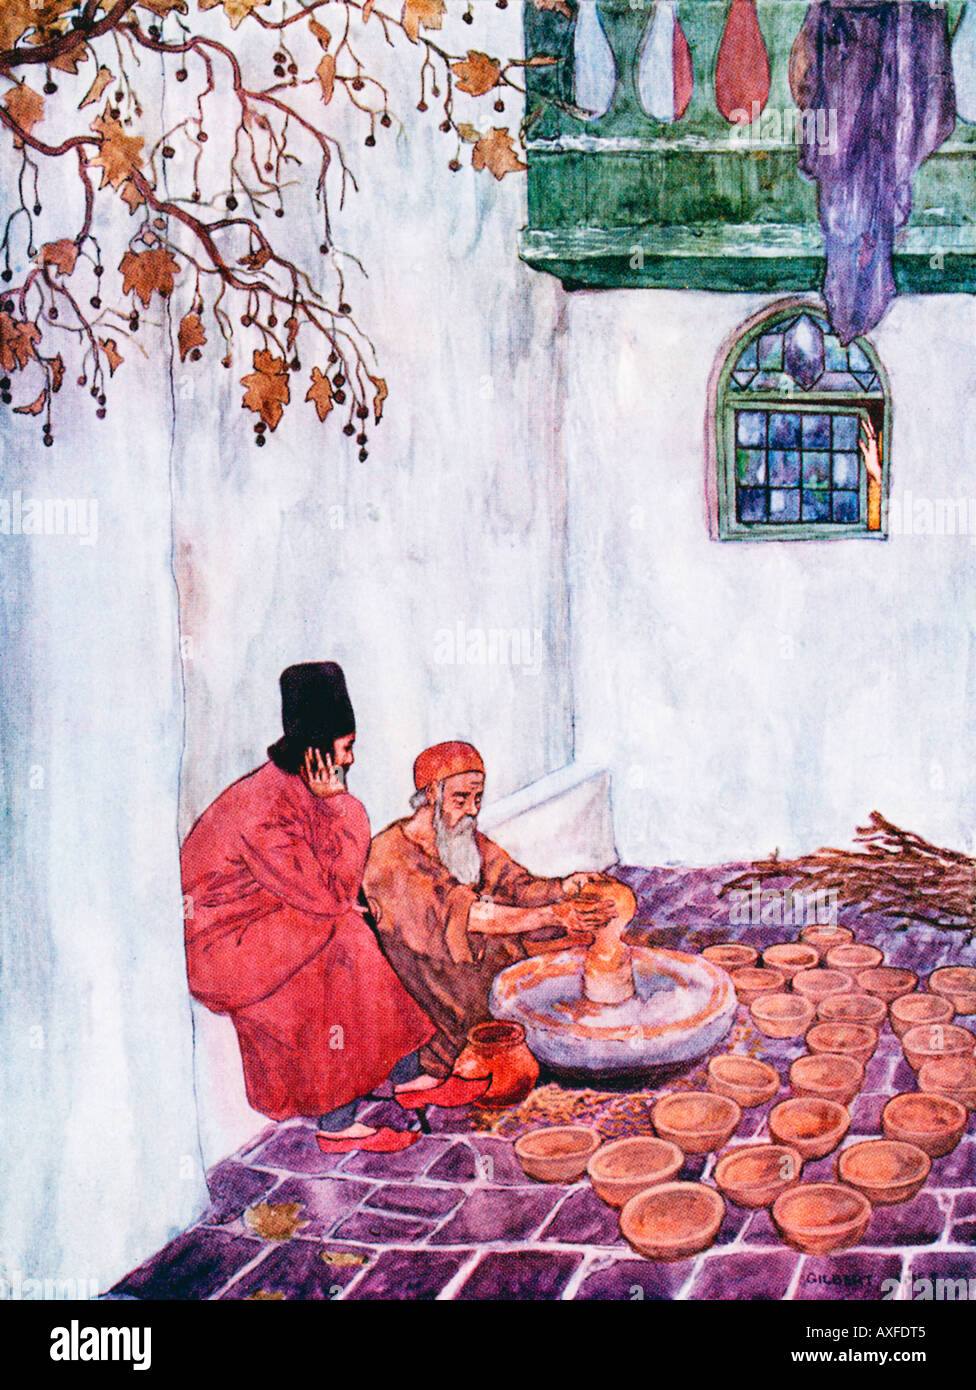 Rubaiyat Omar Khayyam The Potter illustration by Gilbert James from a 1909 edition of the Persian classic - Stock Image